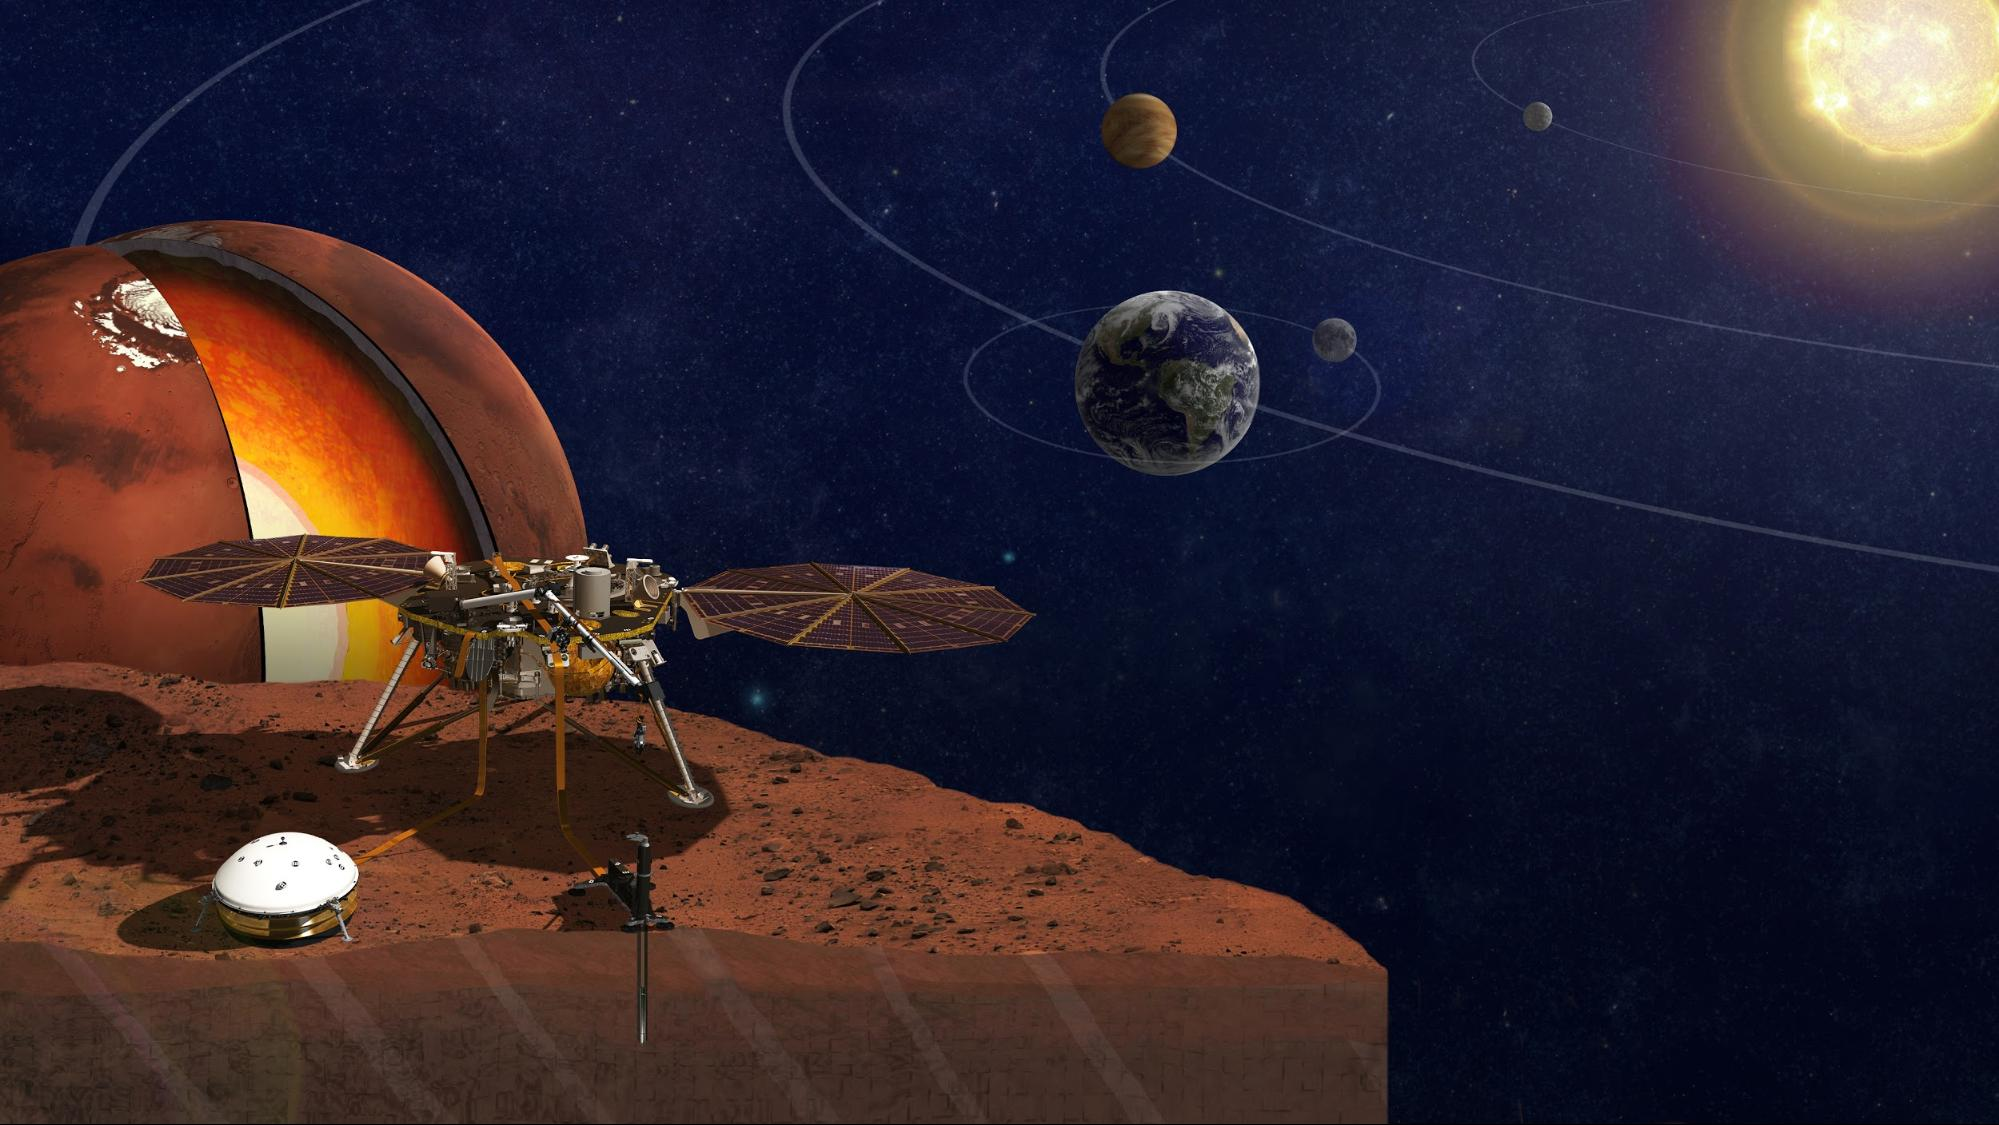 InSight lander will provide info on Earth and Mars interiors.